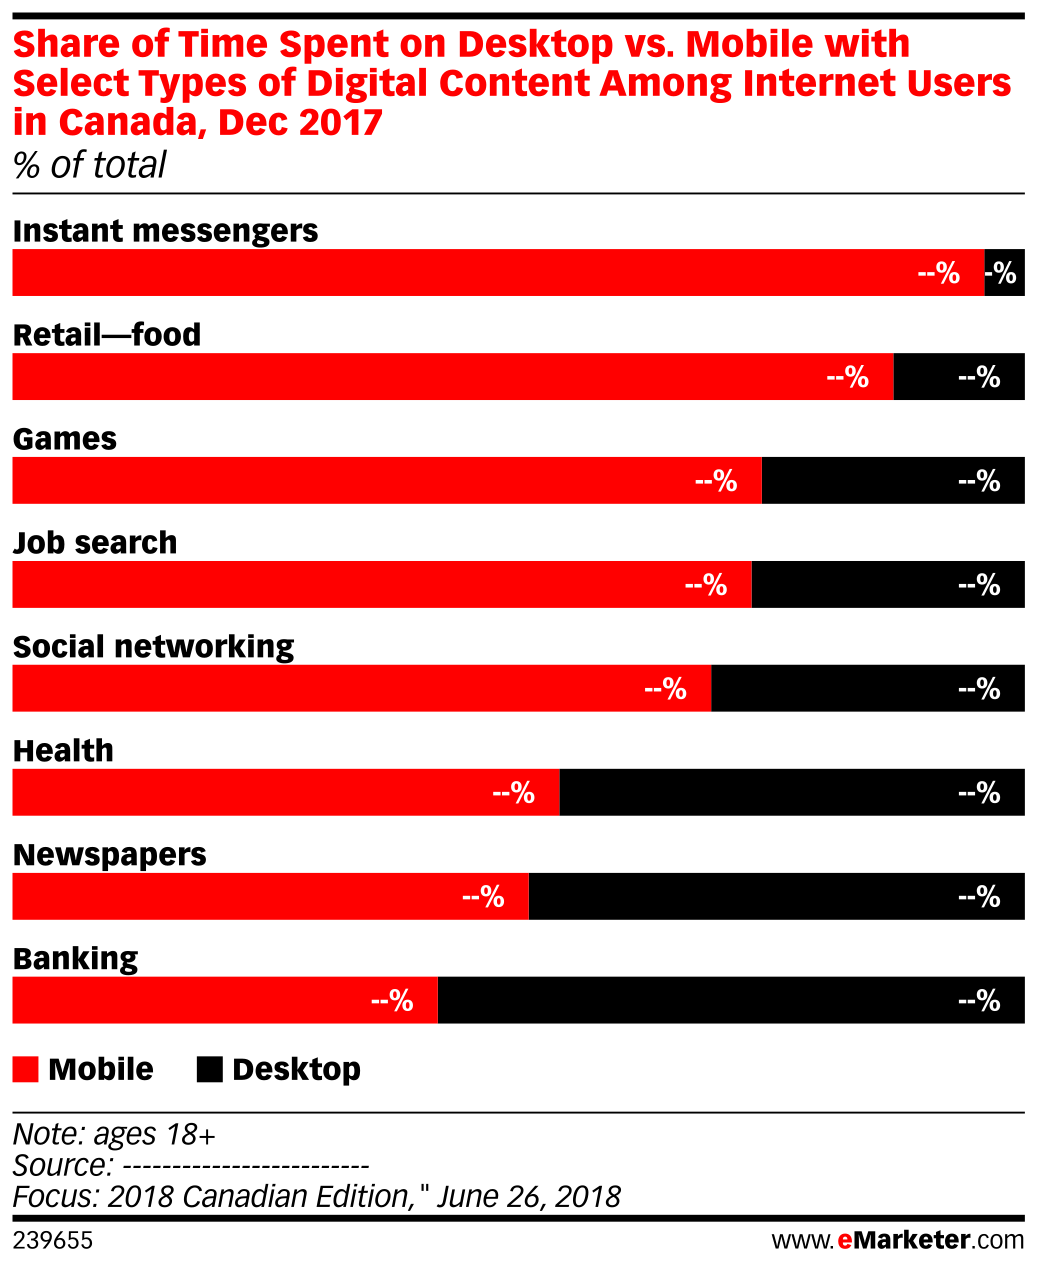 Share of Time Spent on Desktop vs. Mobile with Select Types of Digital Content Among Internet Users in Canada, Dec 2017 (% of total)